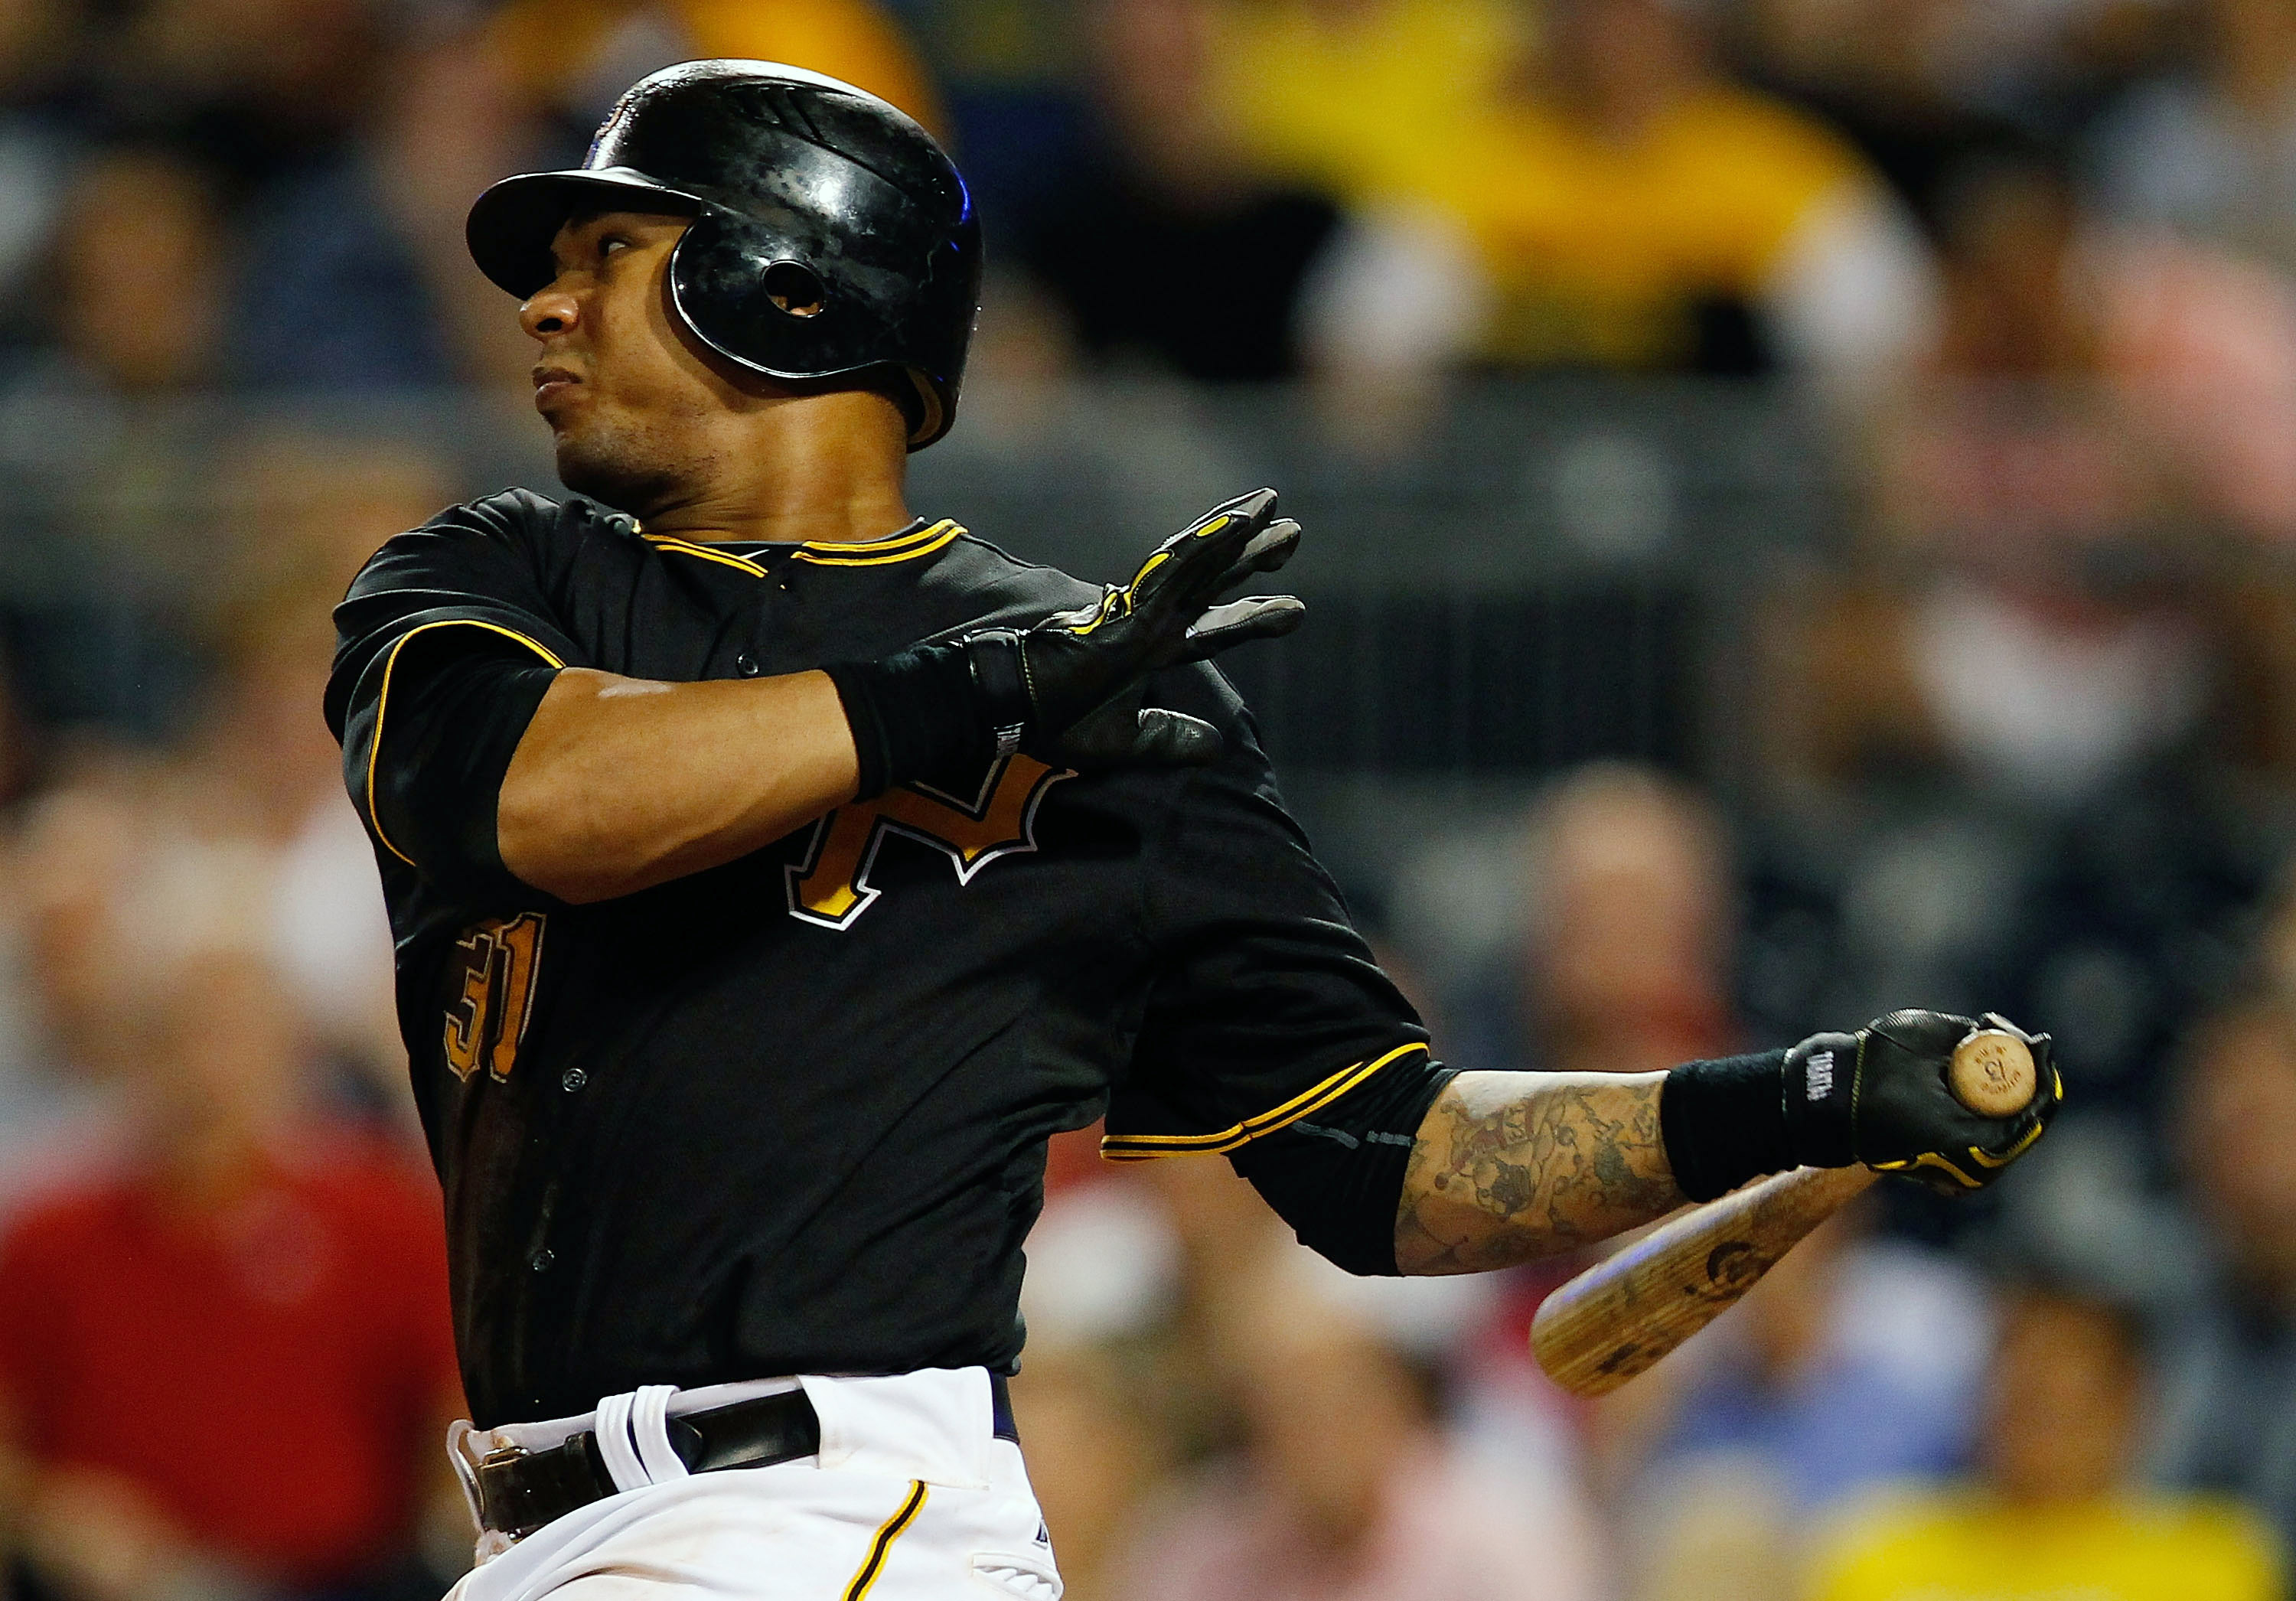 PITTSBURGH - SEPTEMBER 21:  Jose Tabata #31 of the Pittsburgh Pirates hits a two run triple against the St. Louis Cardinals during the game on September 21, 2010 at PNC Park in Pittsburgh, Pennsylvania.  (Photo by Jared Wickerham/Getty Images)